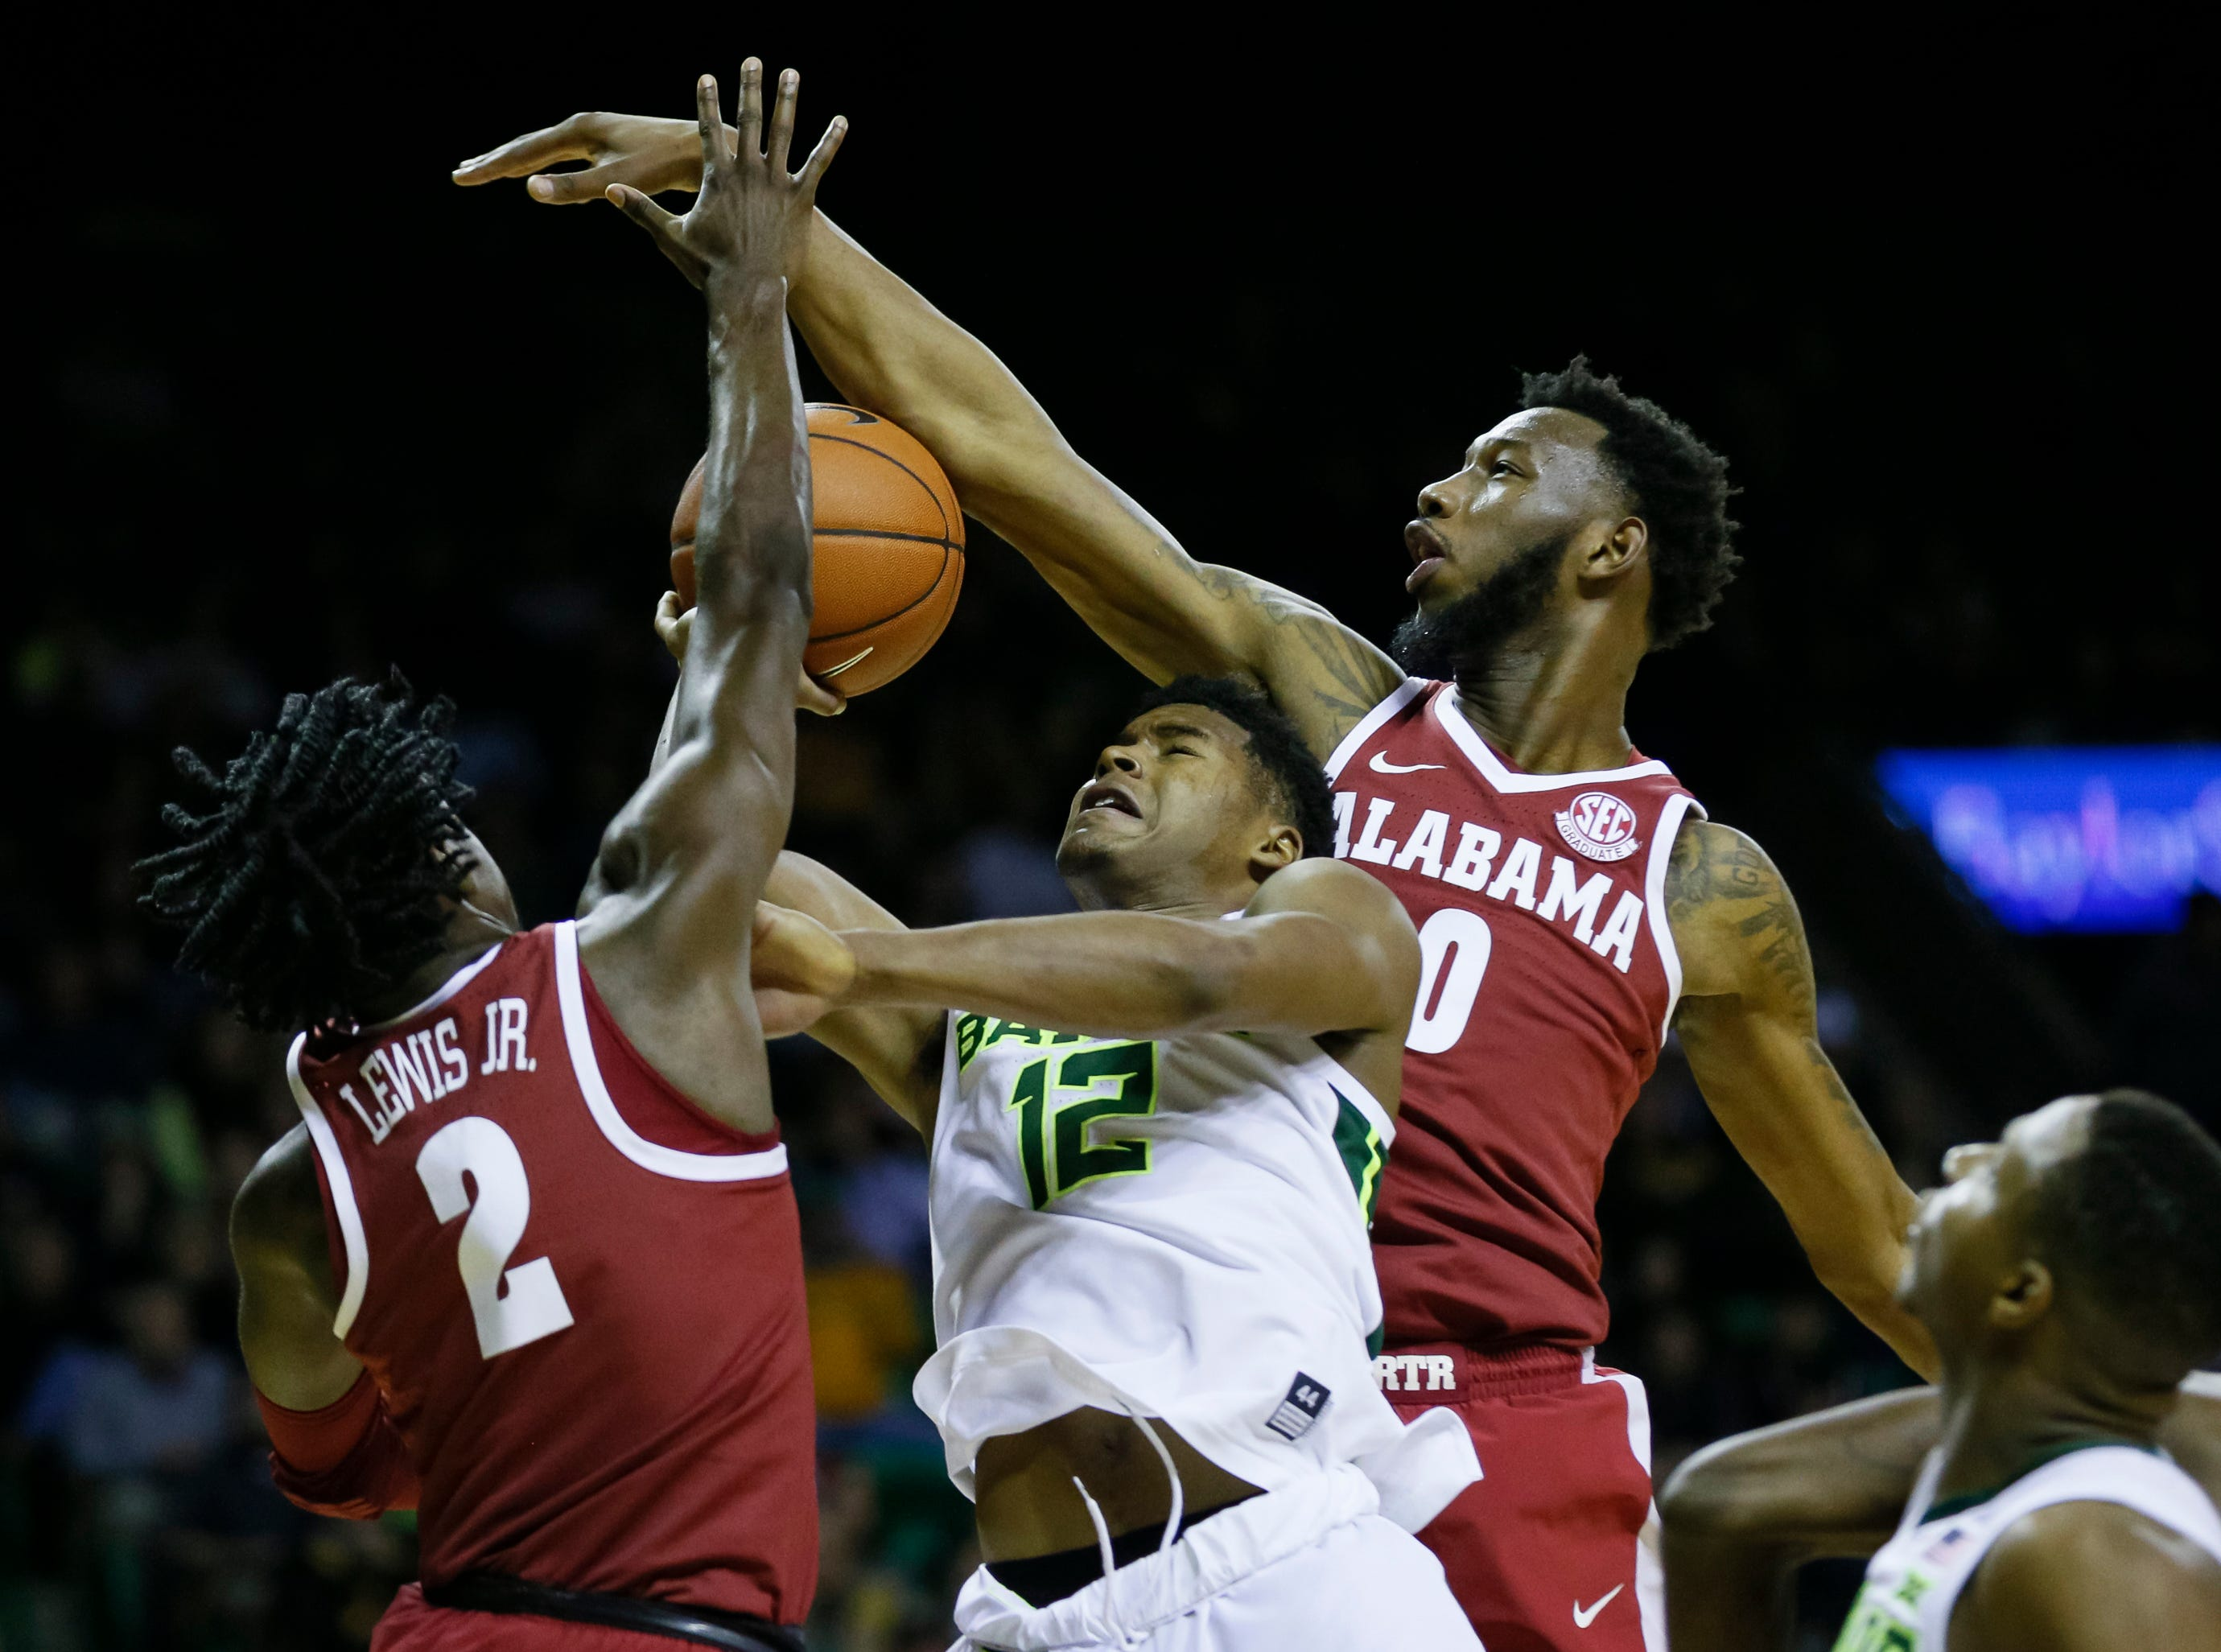 Jan 26, 2019; Waco, TX, USA; Alabama Crimson Tide guard Kira Lewis Jr. (2) and forward Donta Hall (0) defend Baylor Bears guard Jared Butler (12) under the basket during the second half at Ferrell Center. Mandatory Credit: Ray Carlin-USA TODAY Sports